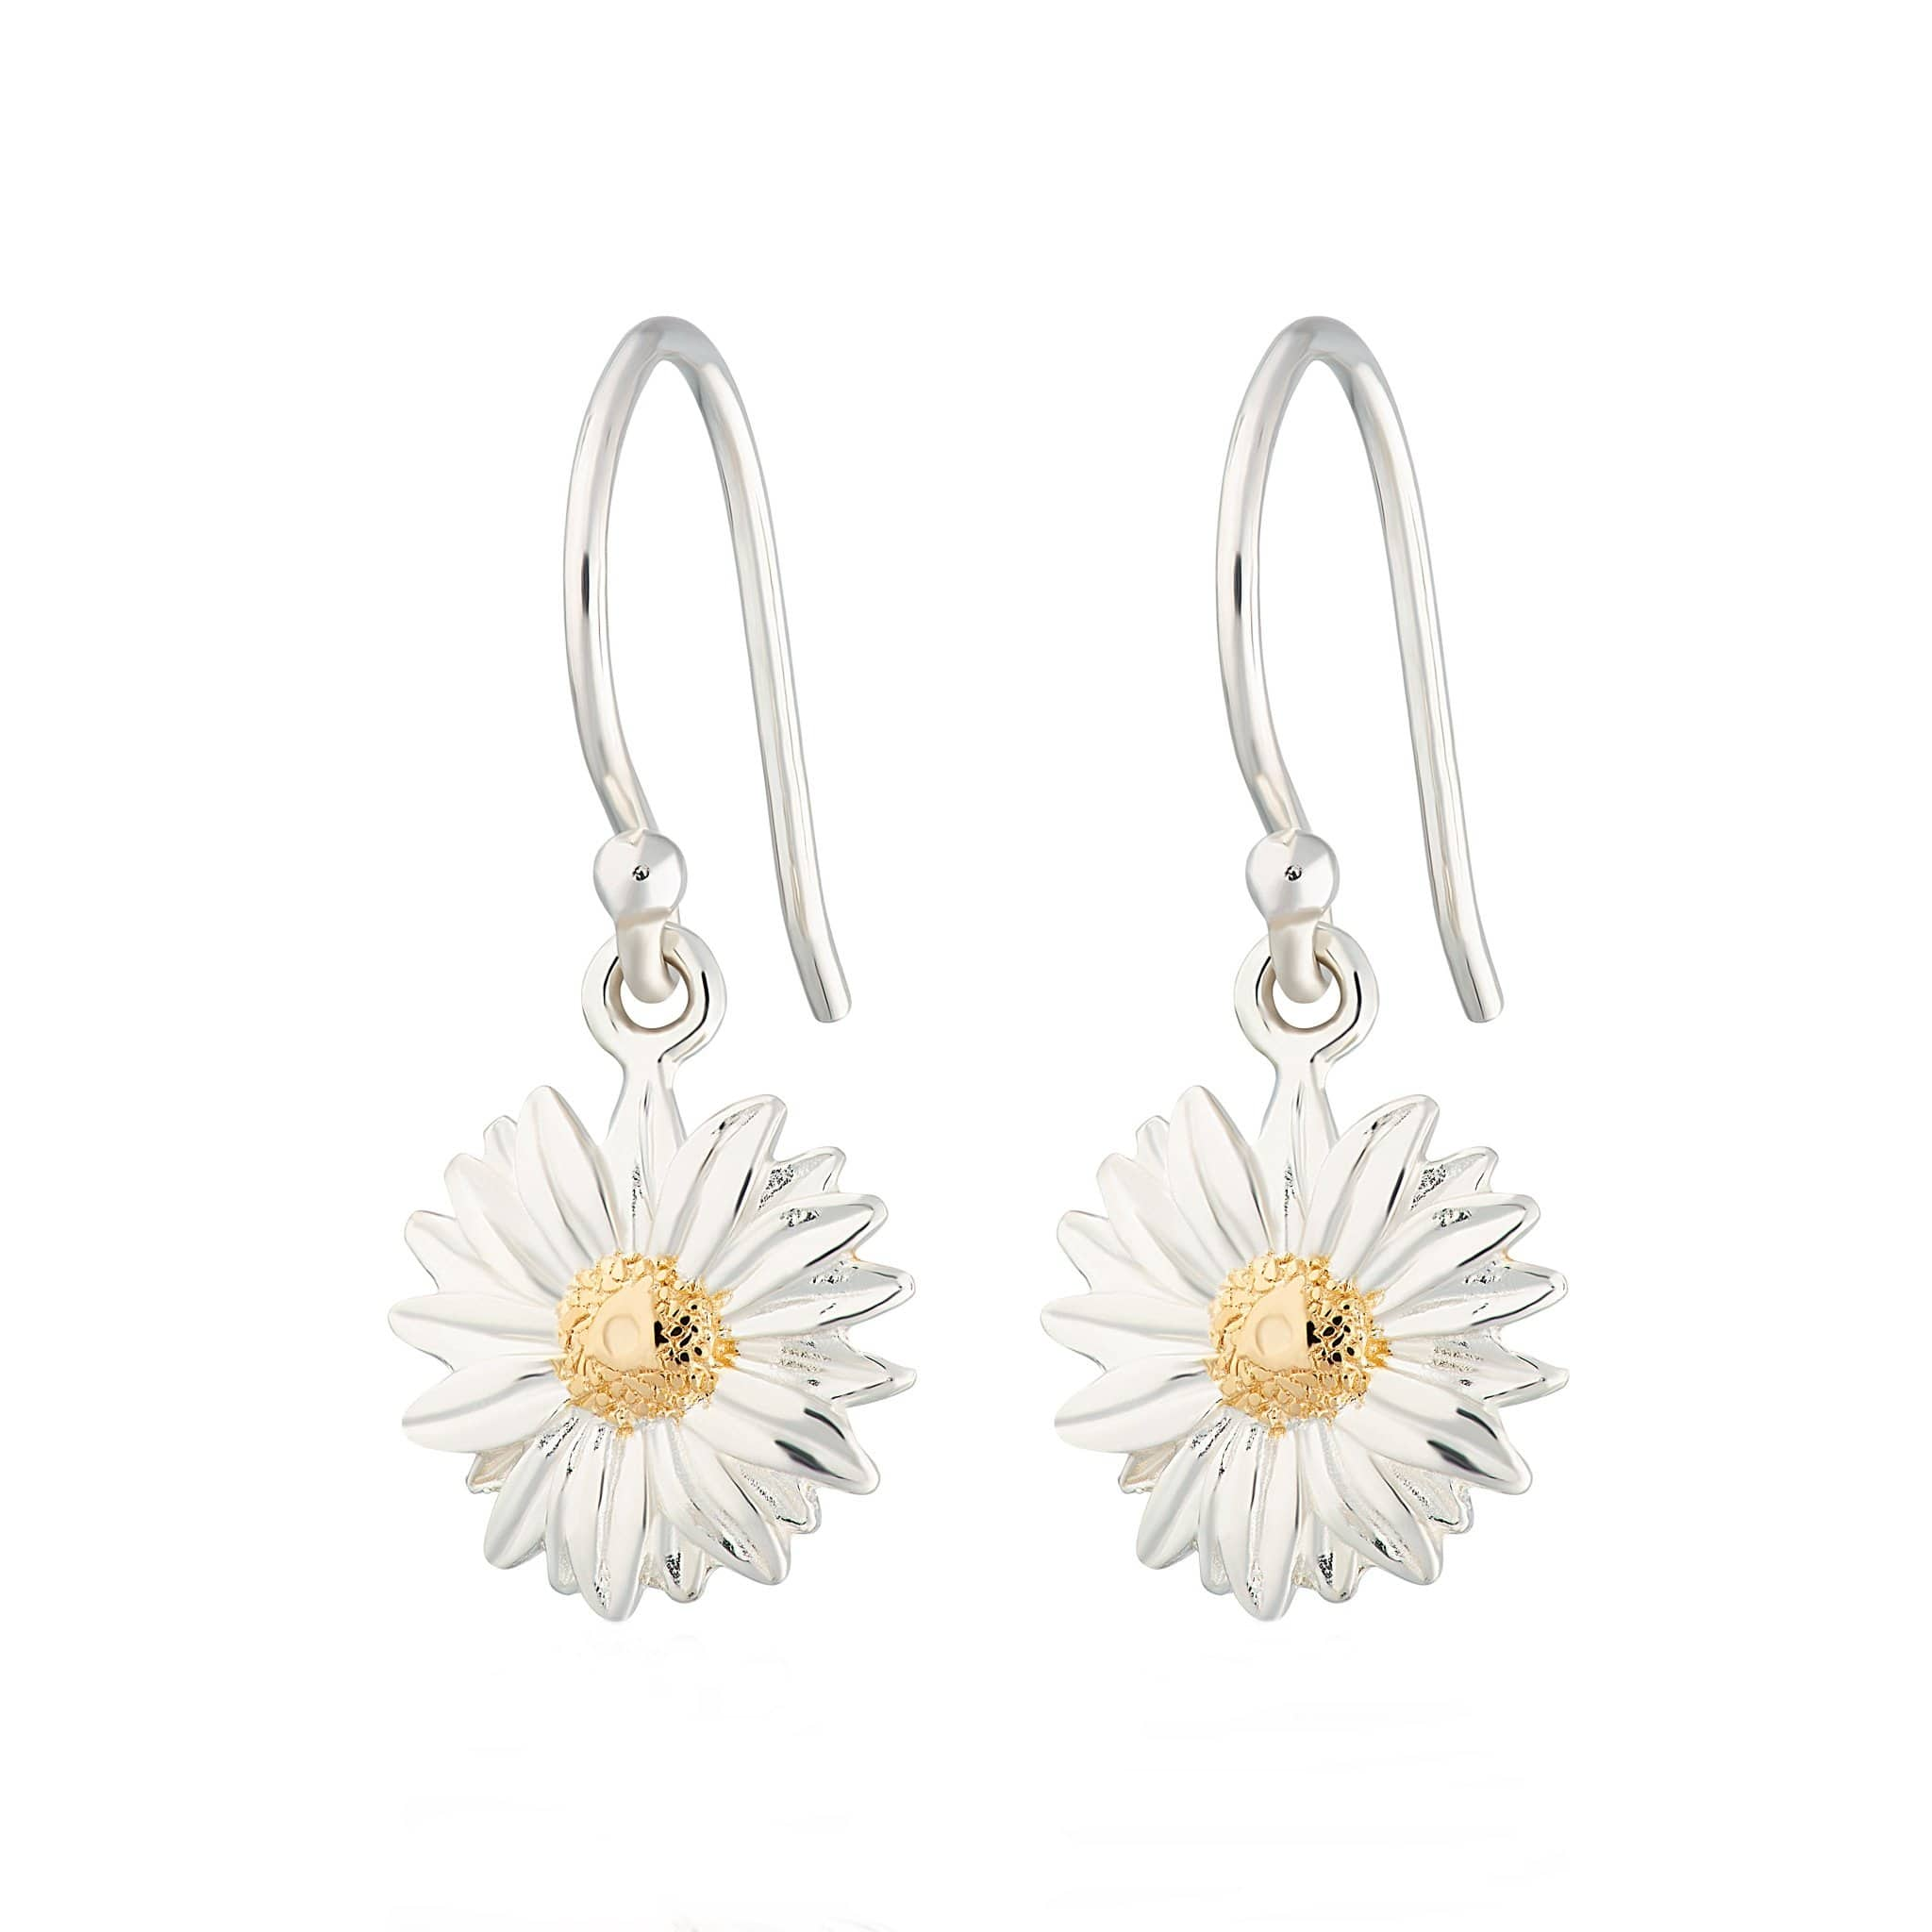 Silver Daisy Hook Earrings - Lily Charmed